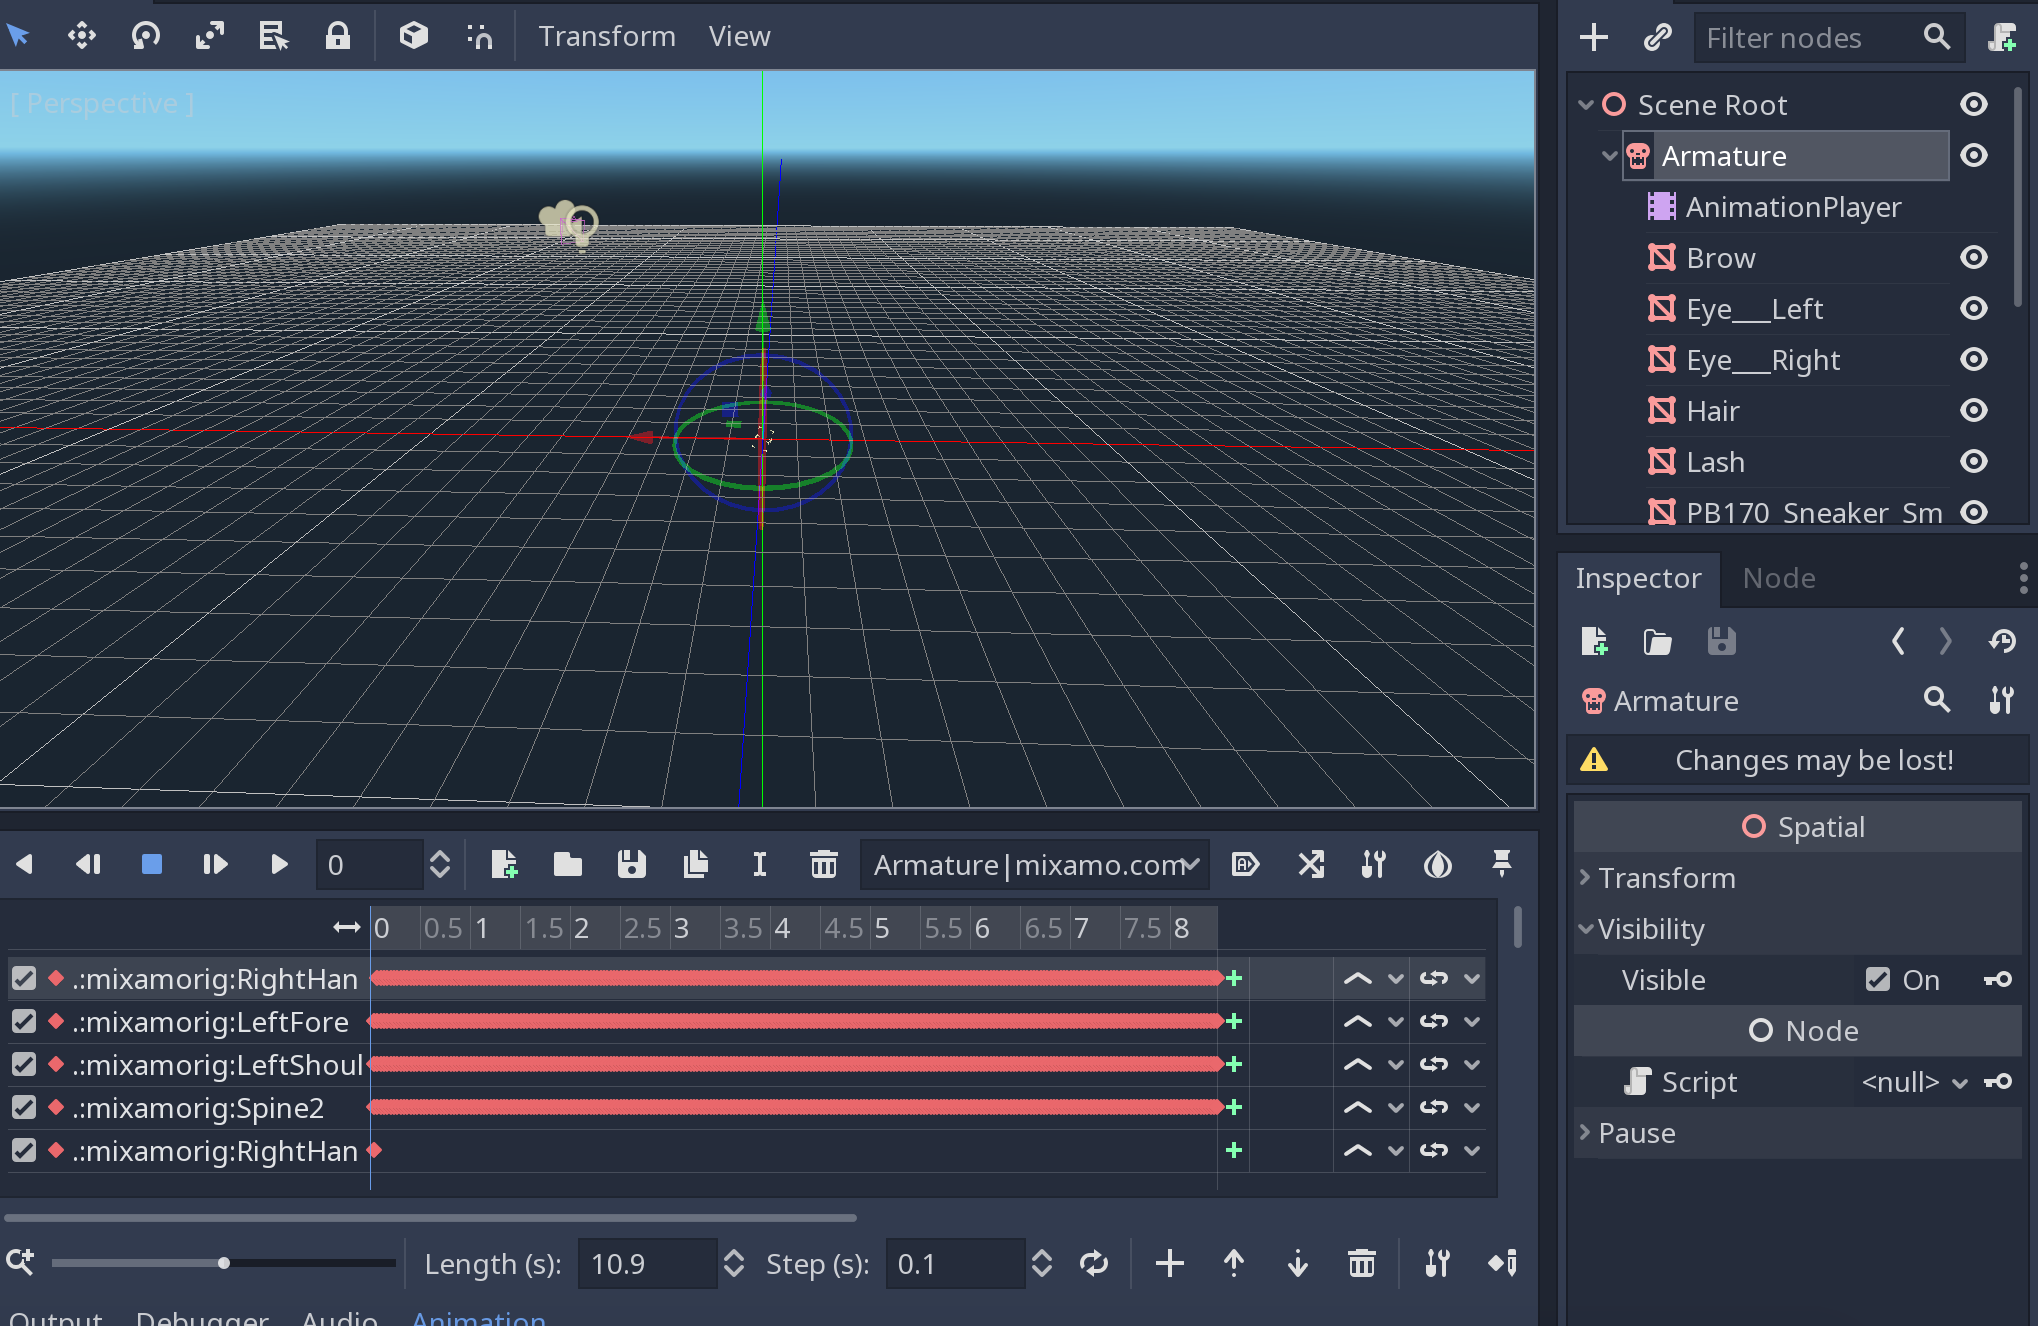 Invisible mesh after export to godot · Issue #43